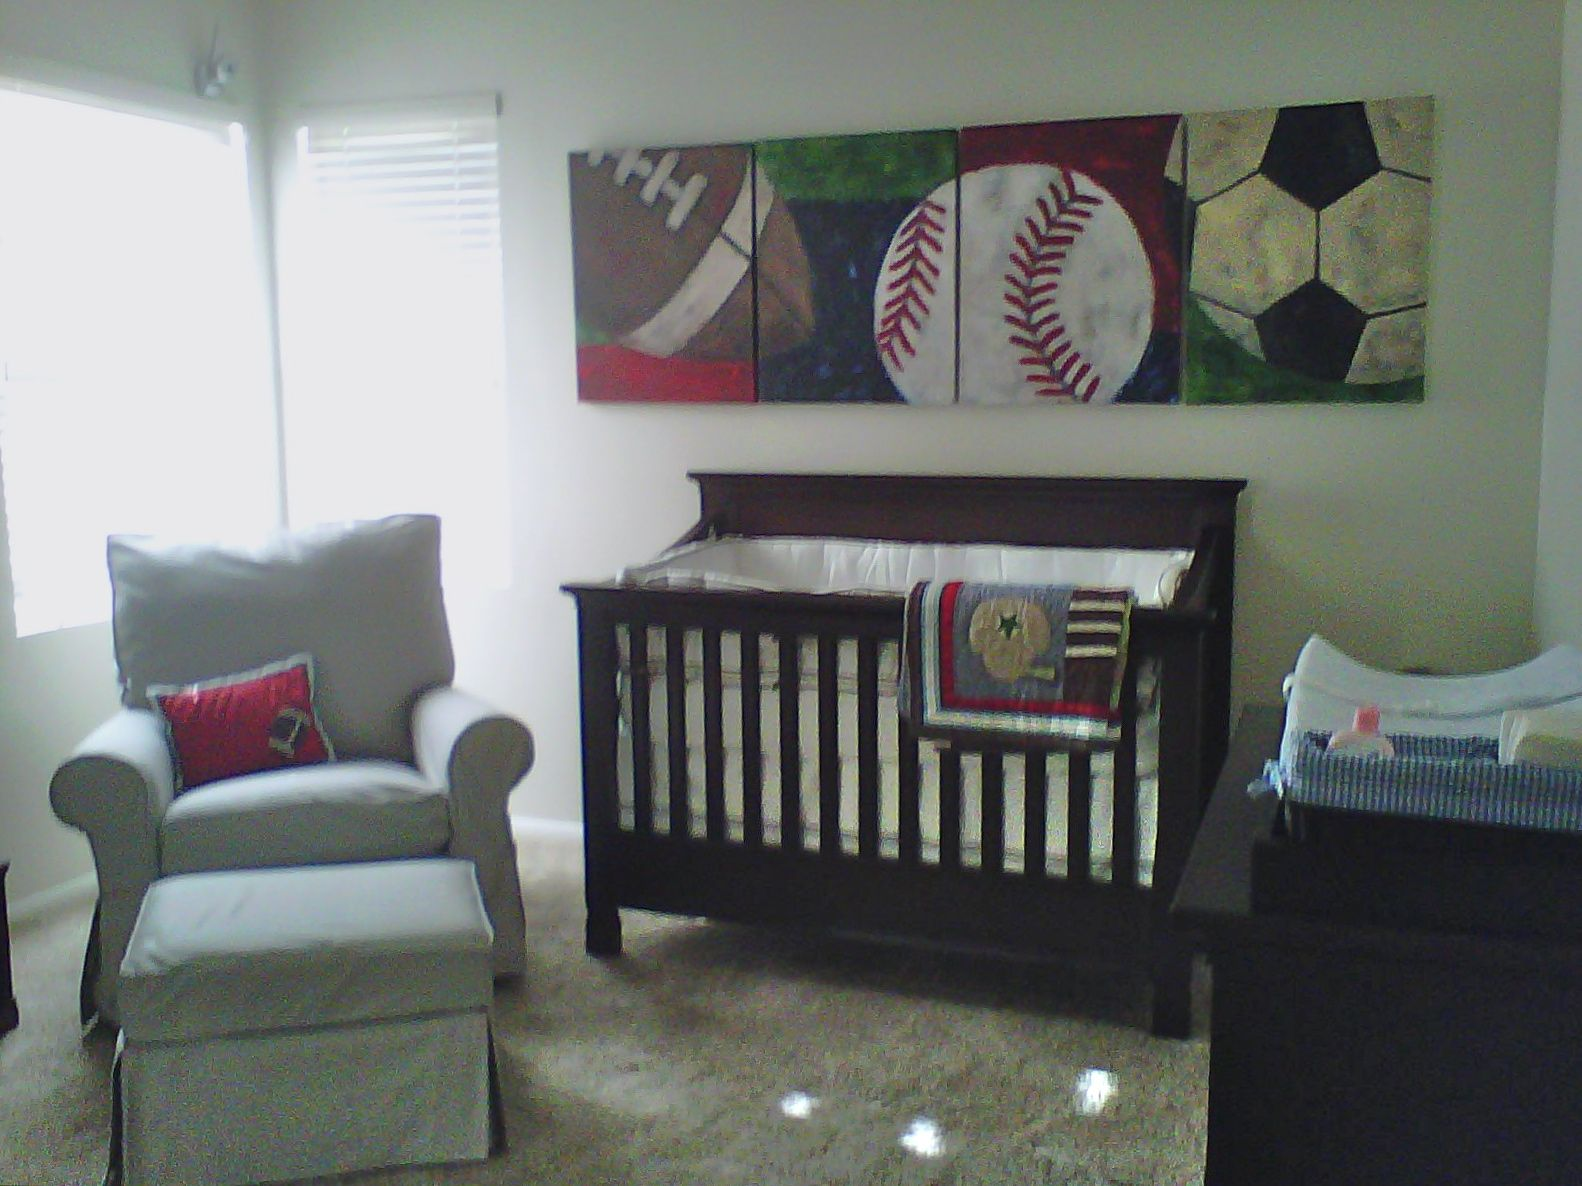 Pin by gagagallery wheeler3designs on sports themed rooms pinterest - Sports bedroom ideas ...